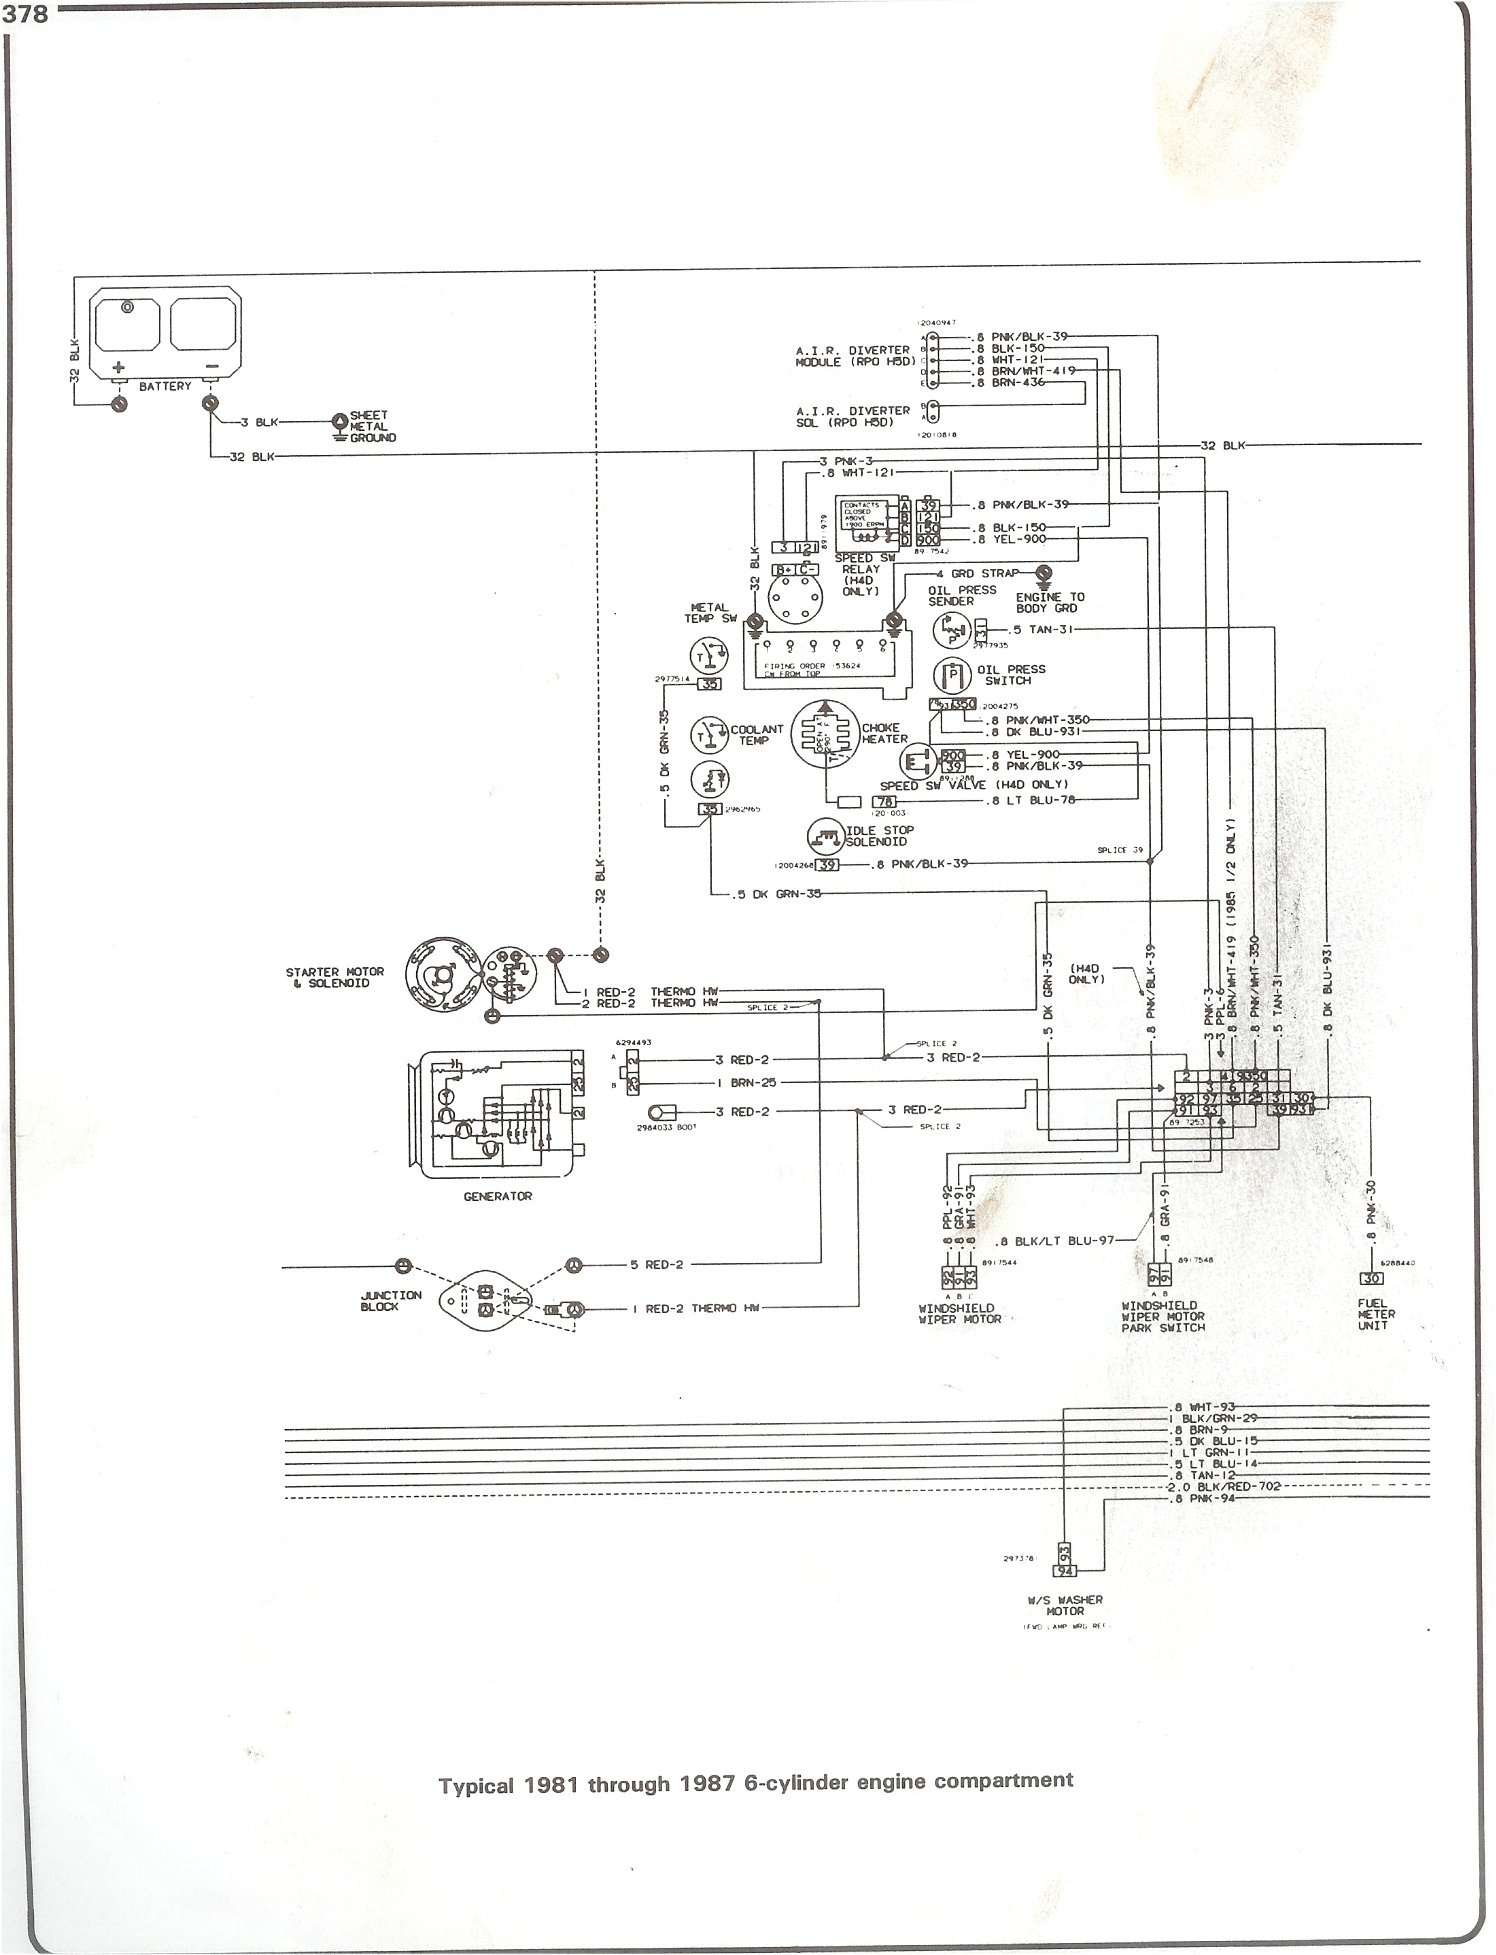 complete 73 87 wiring diagrams rh forum 73 87chevytrucks com Boat Wiring Diagrams Schematics Boat Wiring Diagram Printable